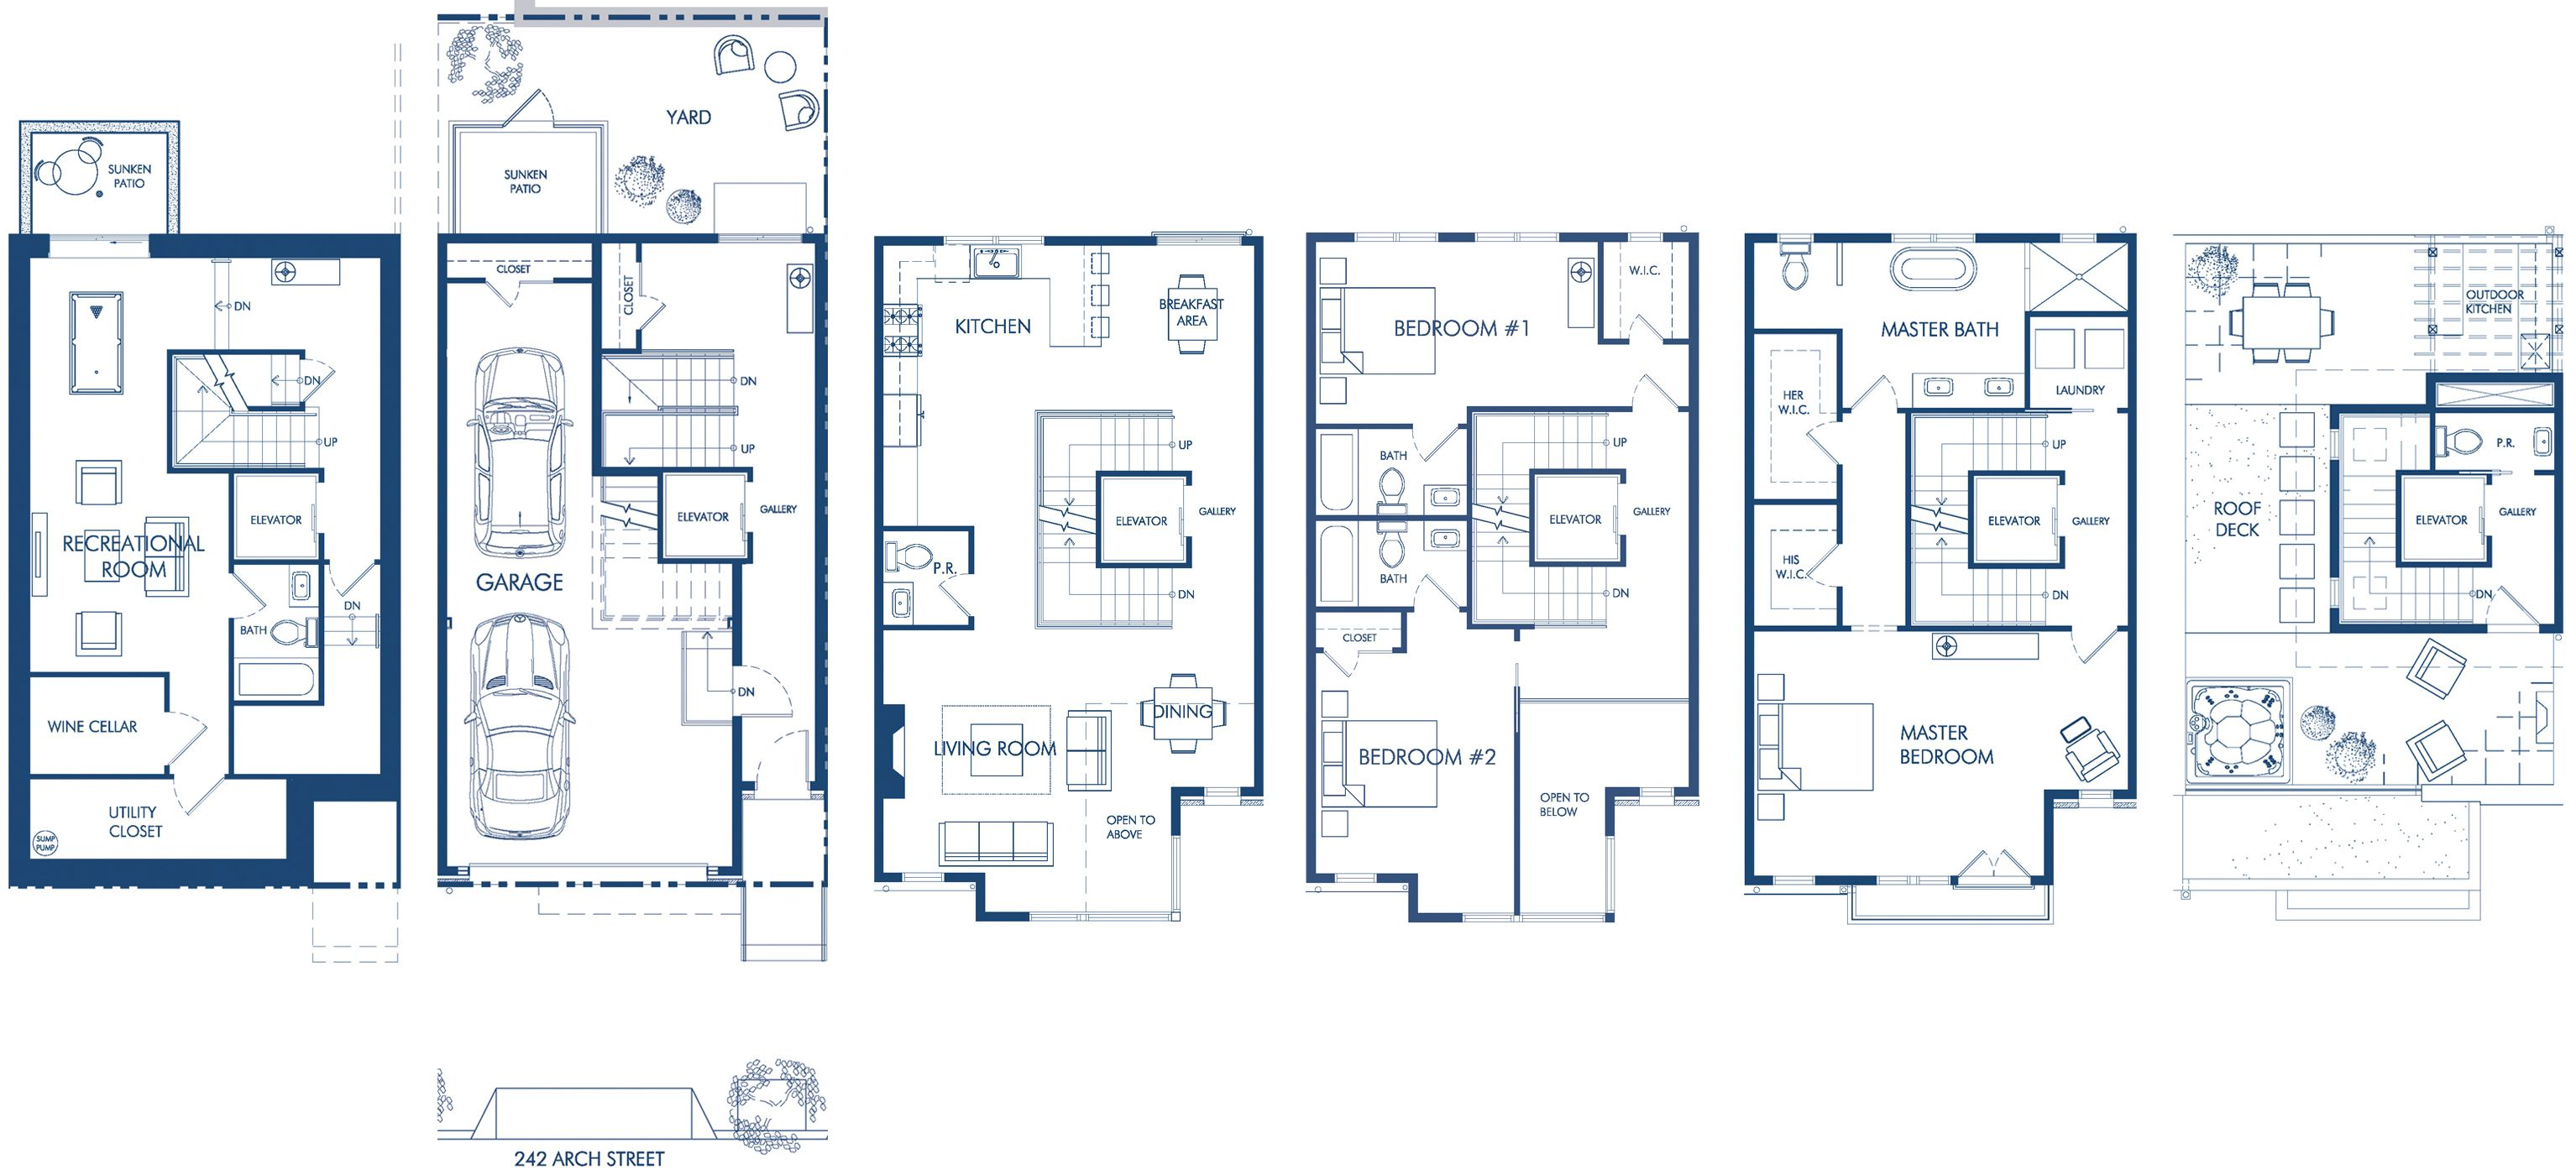 Urban Townhouse Floor Plans: The Ross Luxury Townhomes, 242 Arch Street